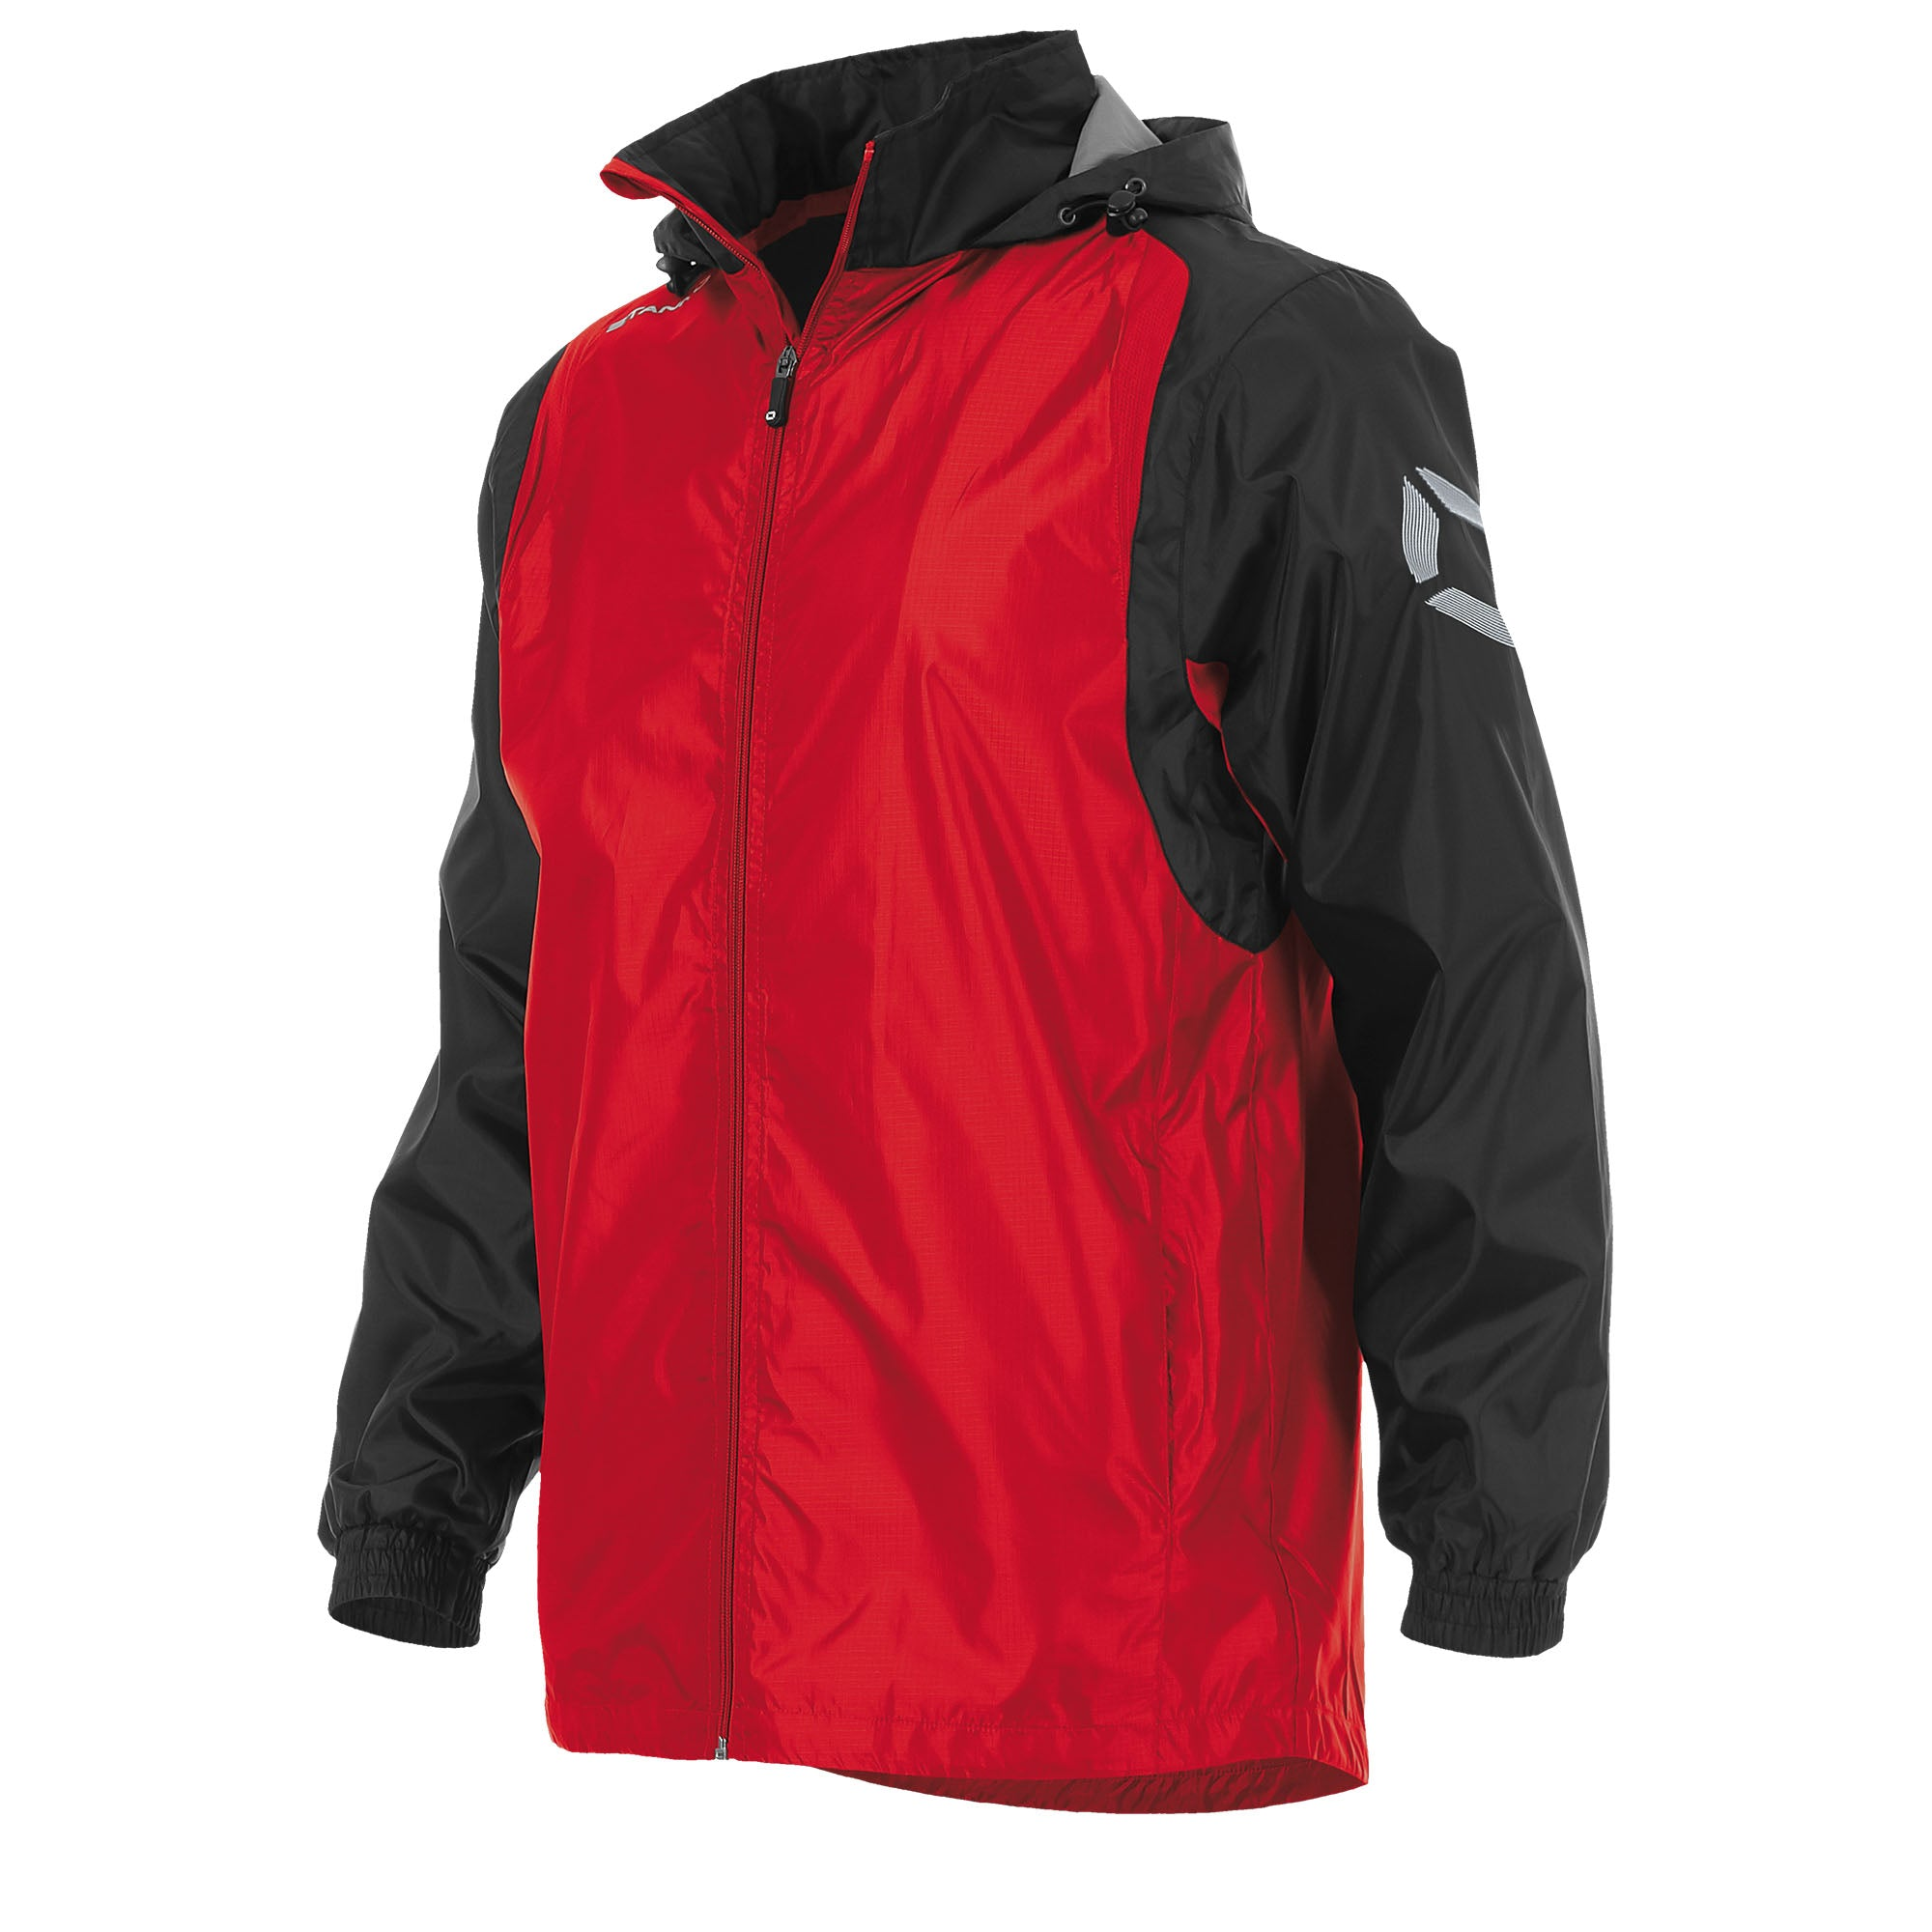 Front of Stanno Centro windbreaker in red with black contrast sleeve and Stanno printed logo